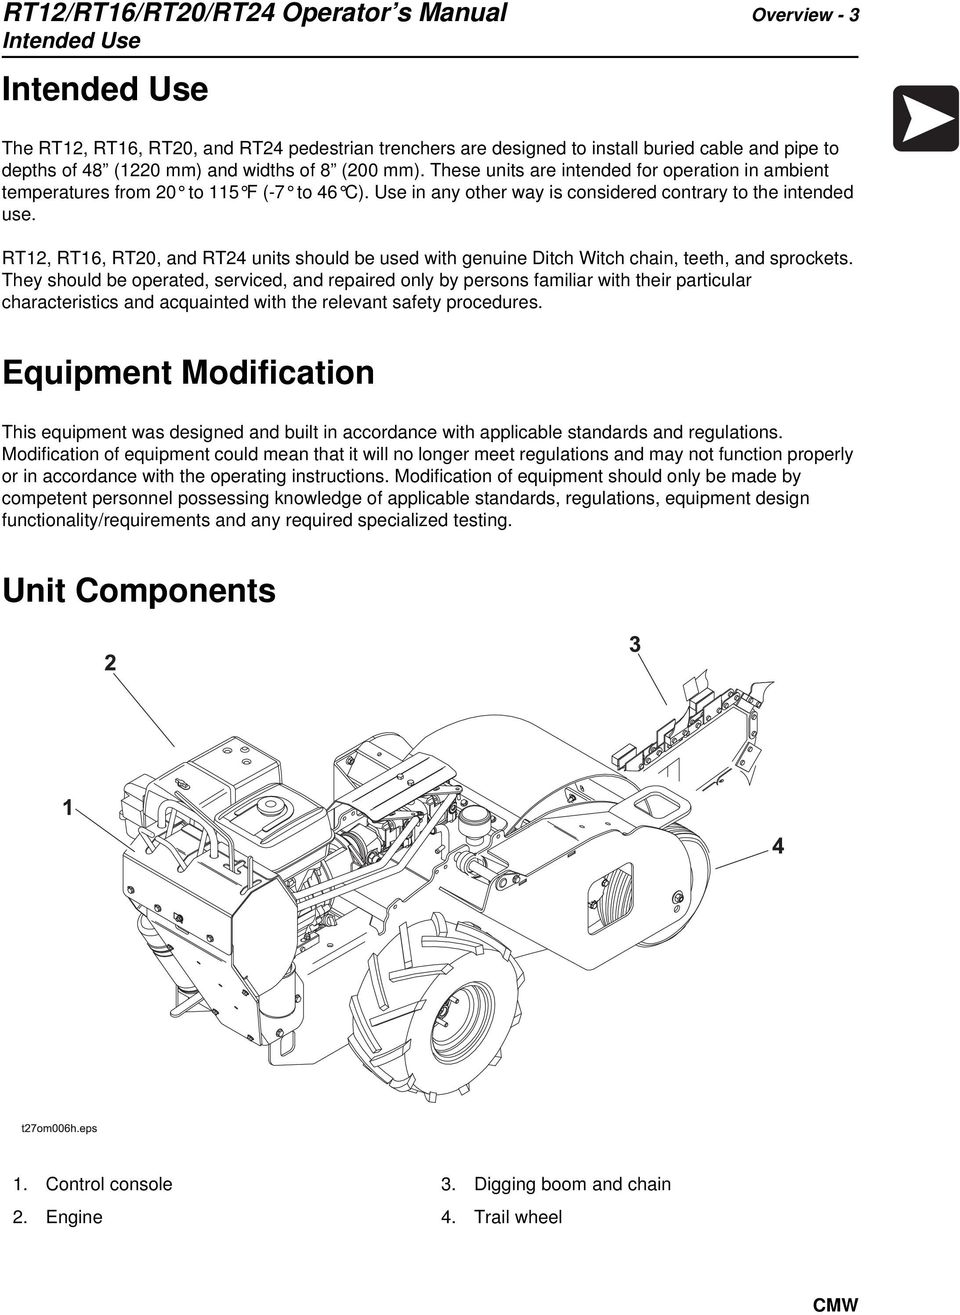 Rt12 Rt16 Rt20 Rt24 Operator S Manual Issue 10 Original Ditch Witch Wiring Diagram And Units Should Be Used With Genuine